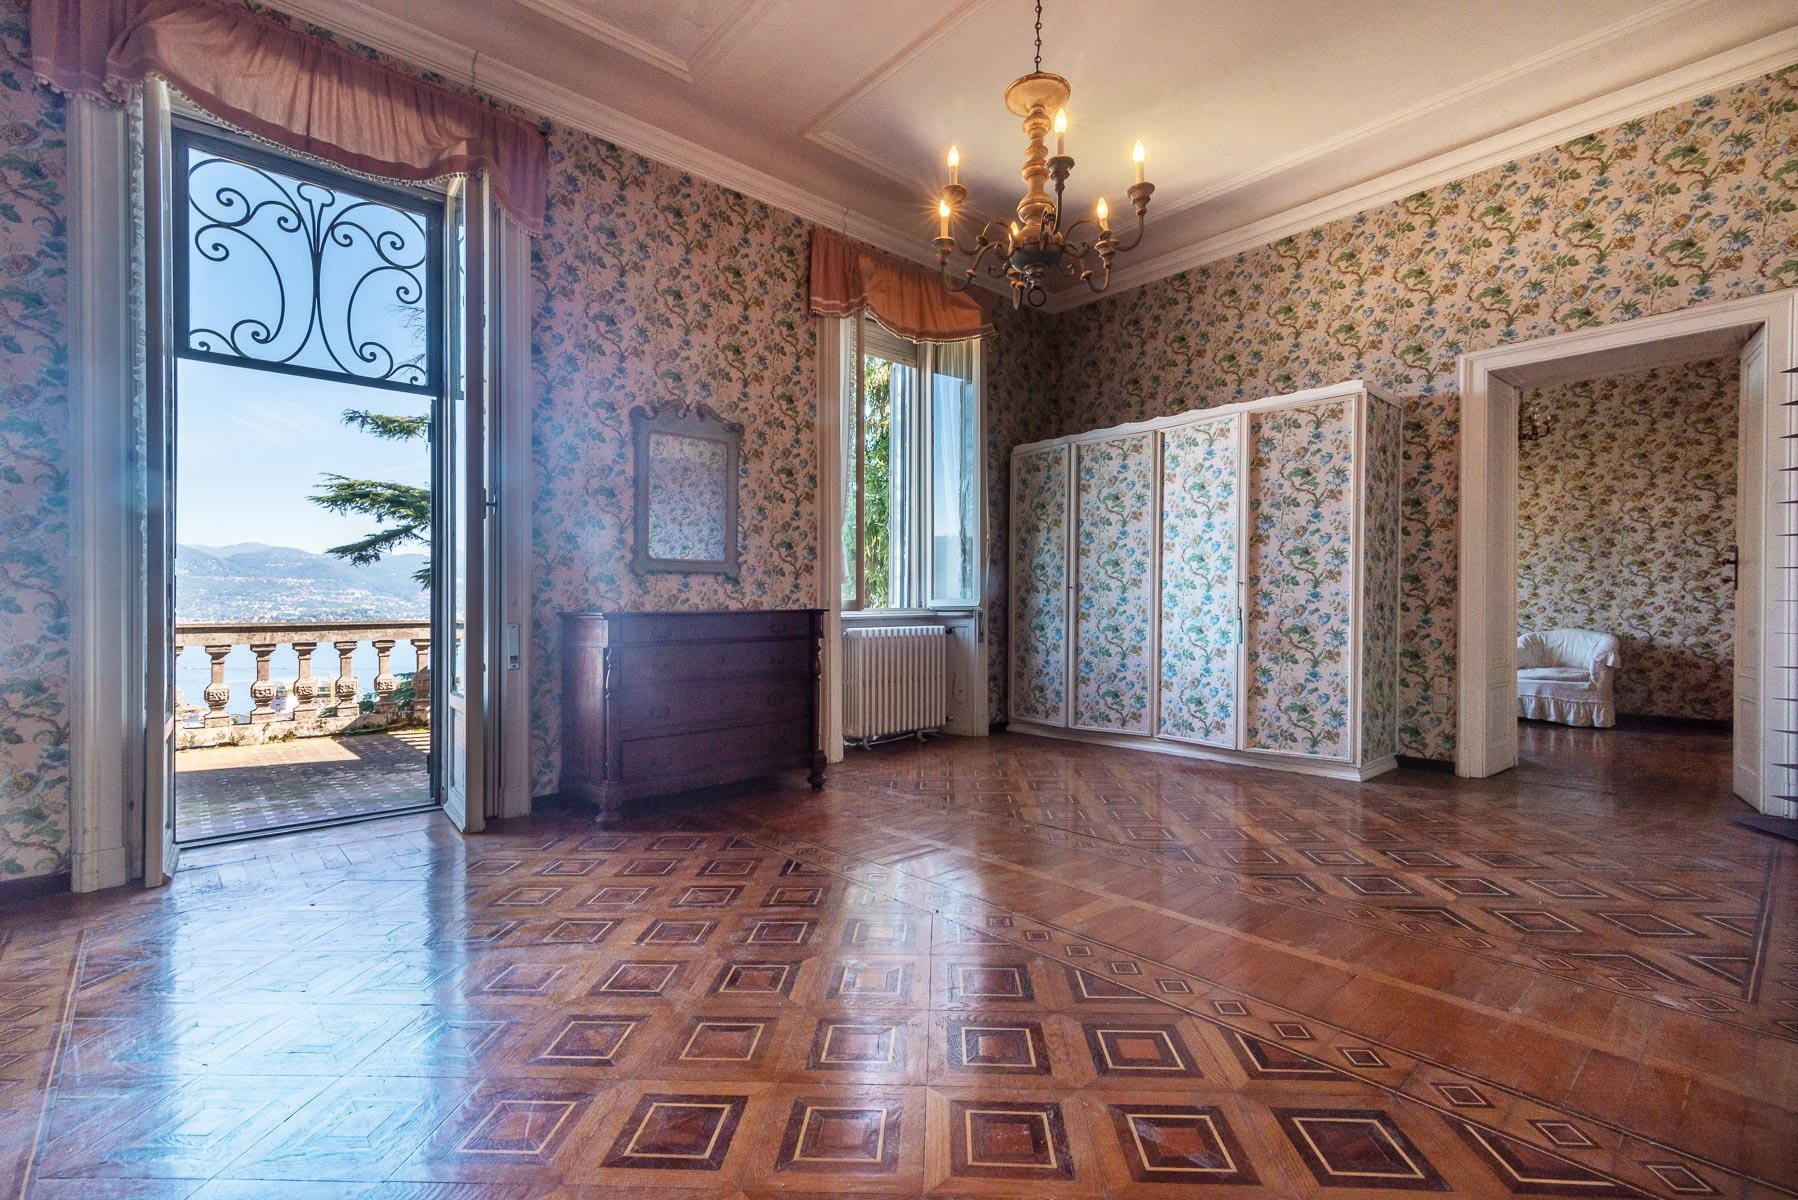 Liberty villa for sale in Stresa - salon